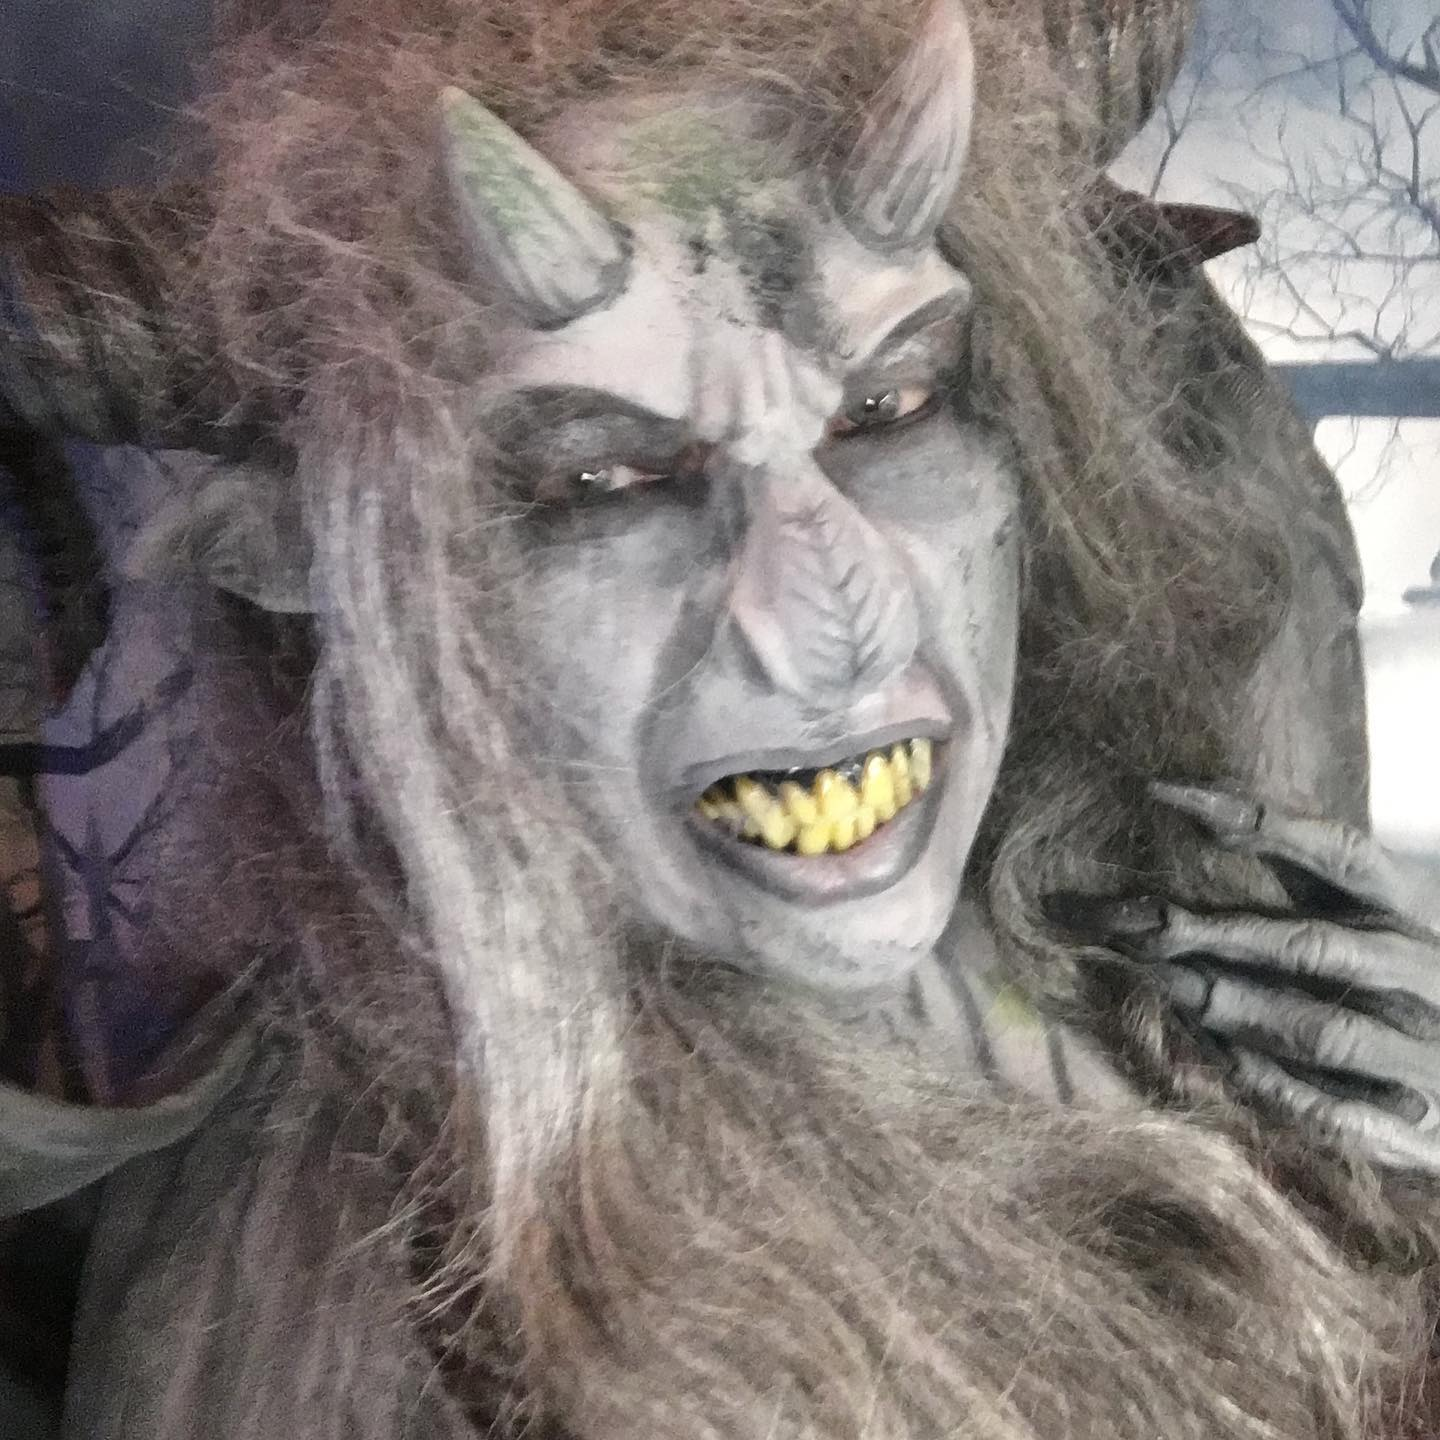 Honorable Mention in Gargoyle Instagram Makeup Challenge judged by